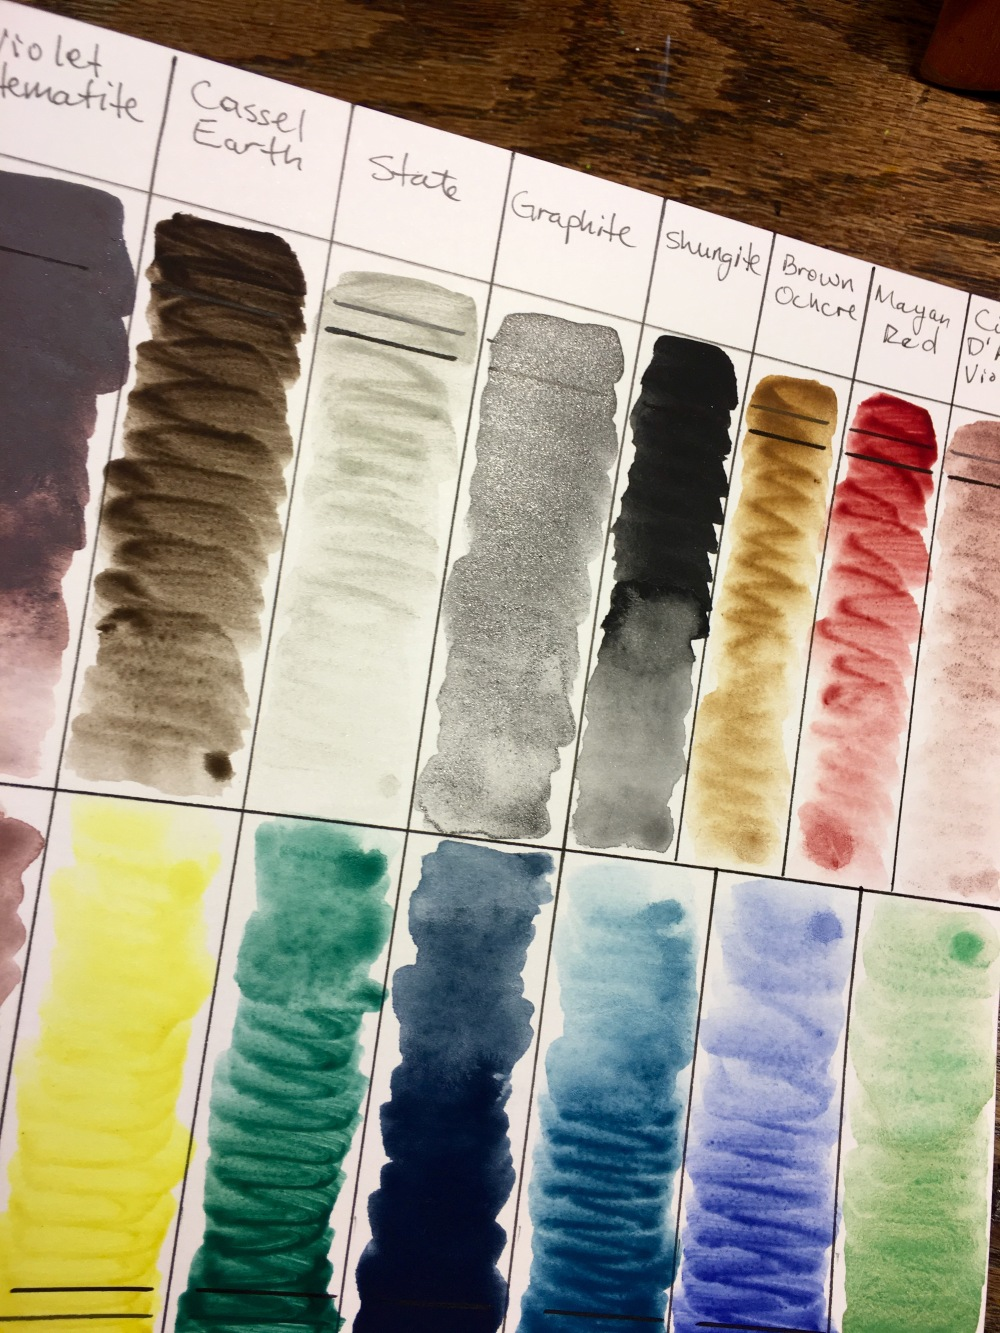 Fresh watercolor swatch of Greenleaf & Blueberry watercolors, Graphite shimmer